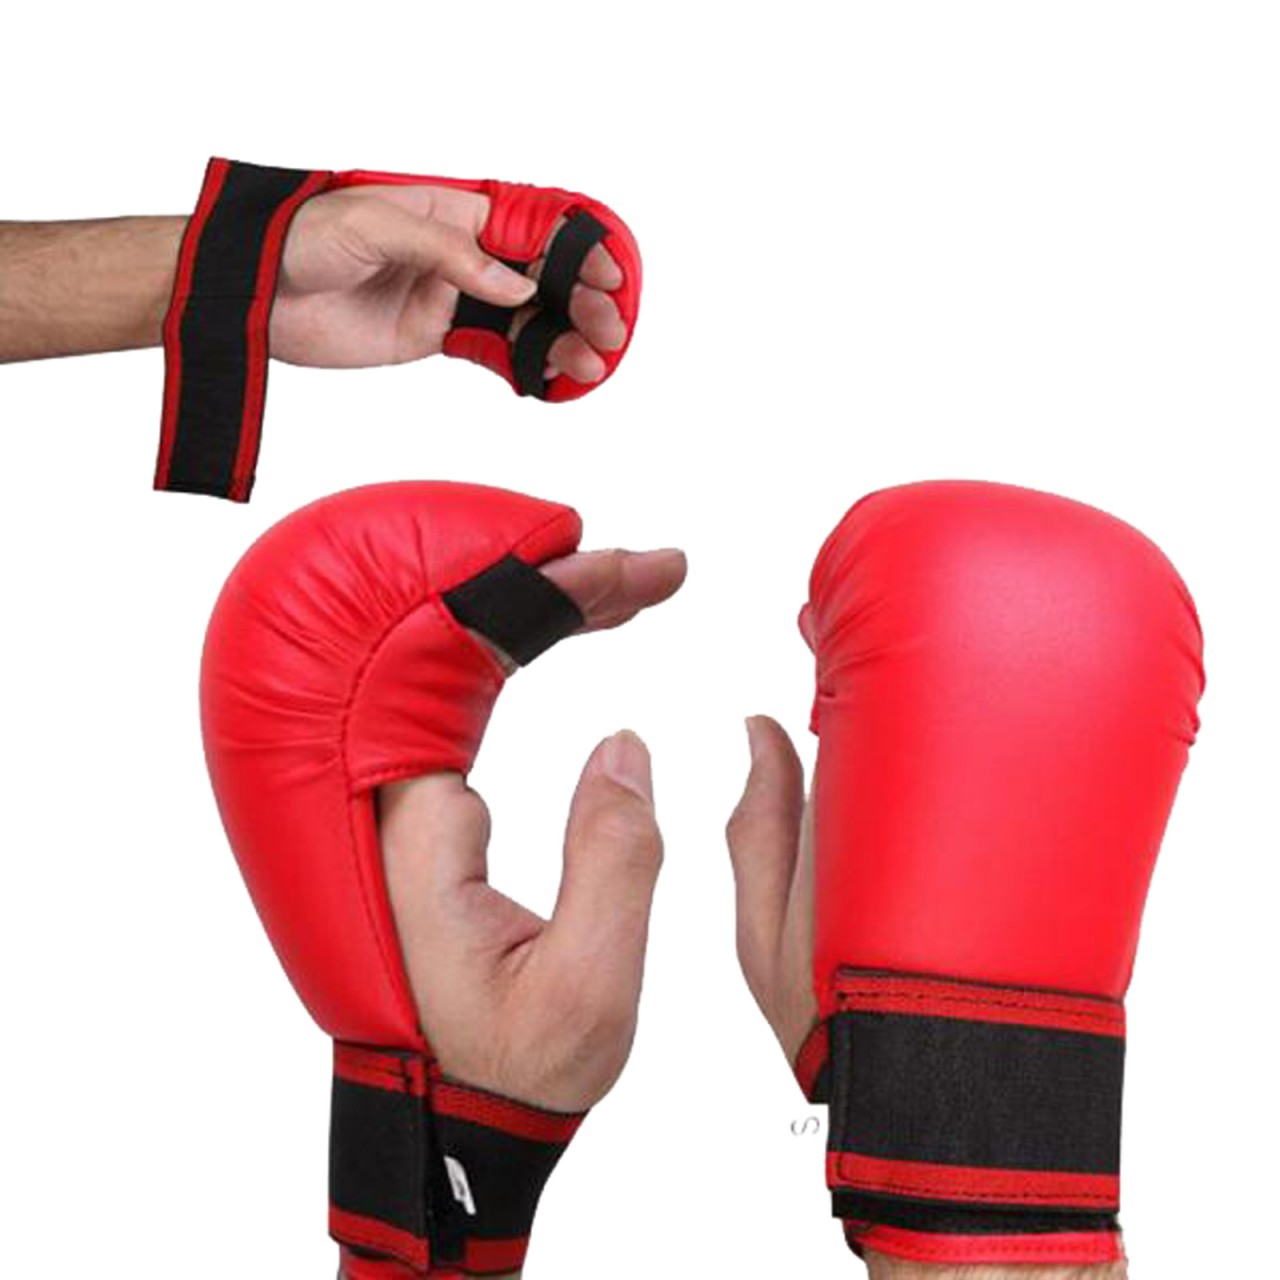 Image result for Sparring Gloves